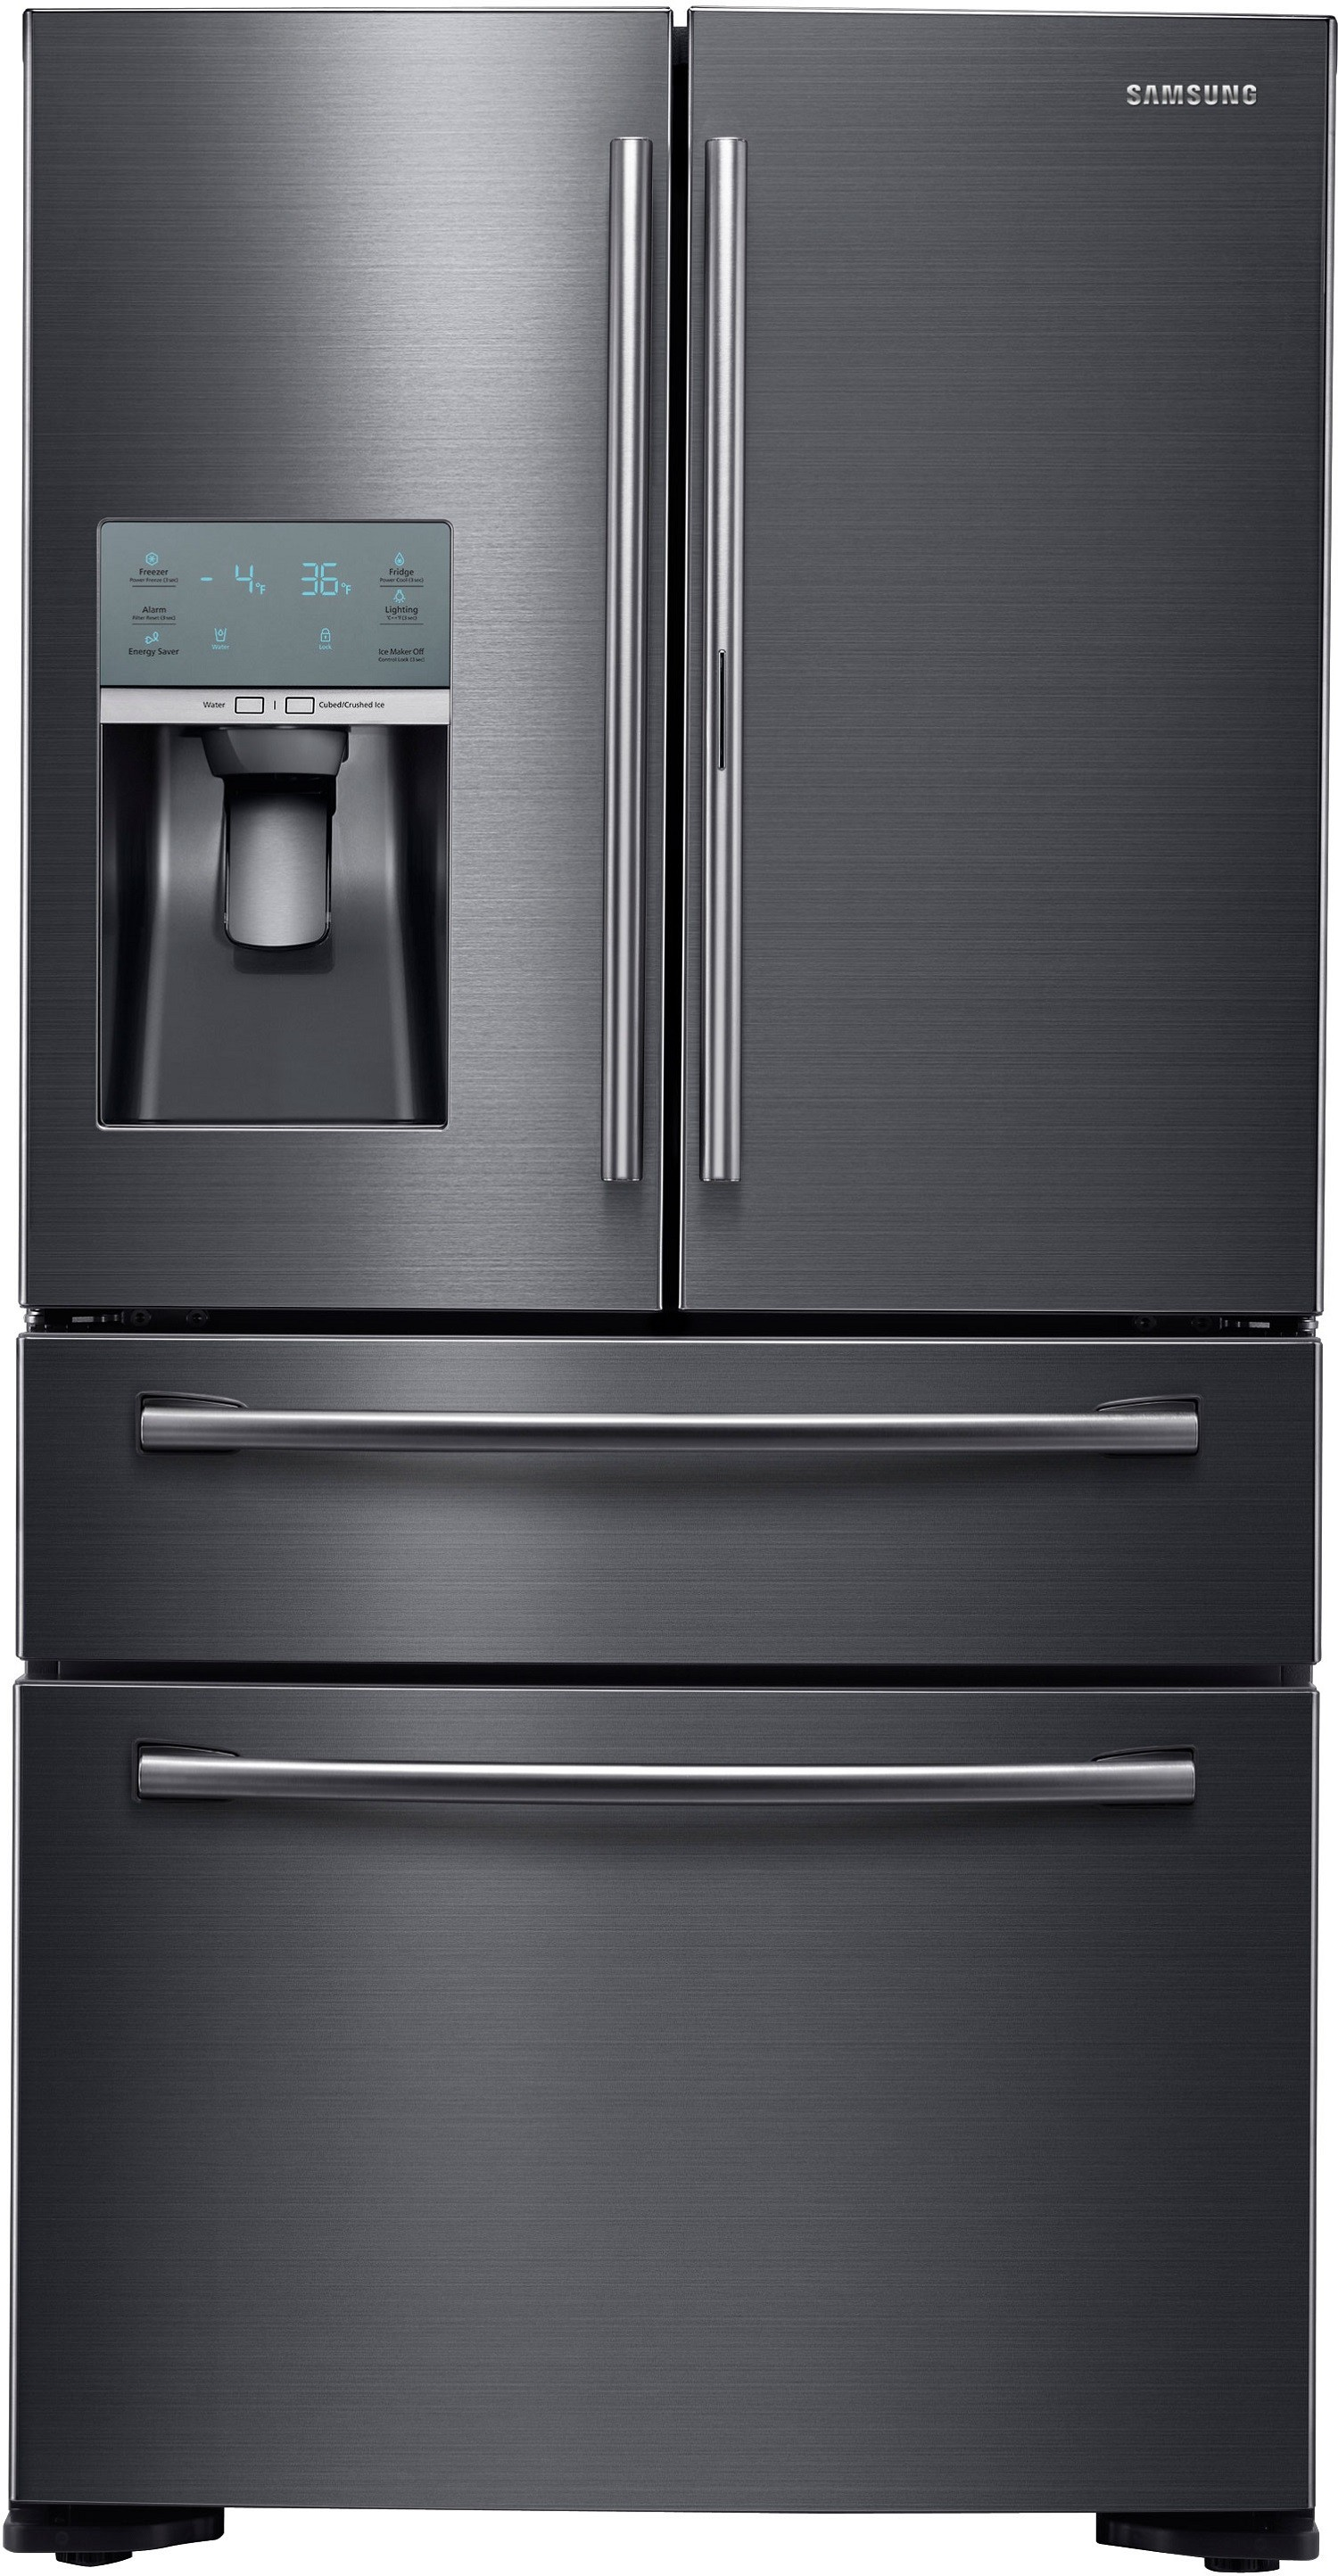 prod d cu stainless details sale refrigerator wid deli n jsp drawer fresh hei ft op door sharpen steel w maytag product french wide